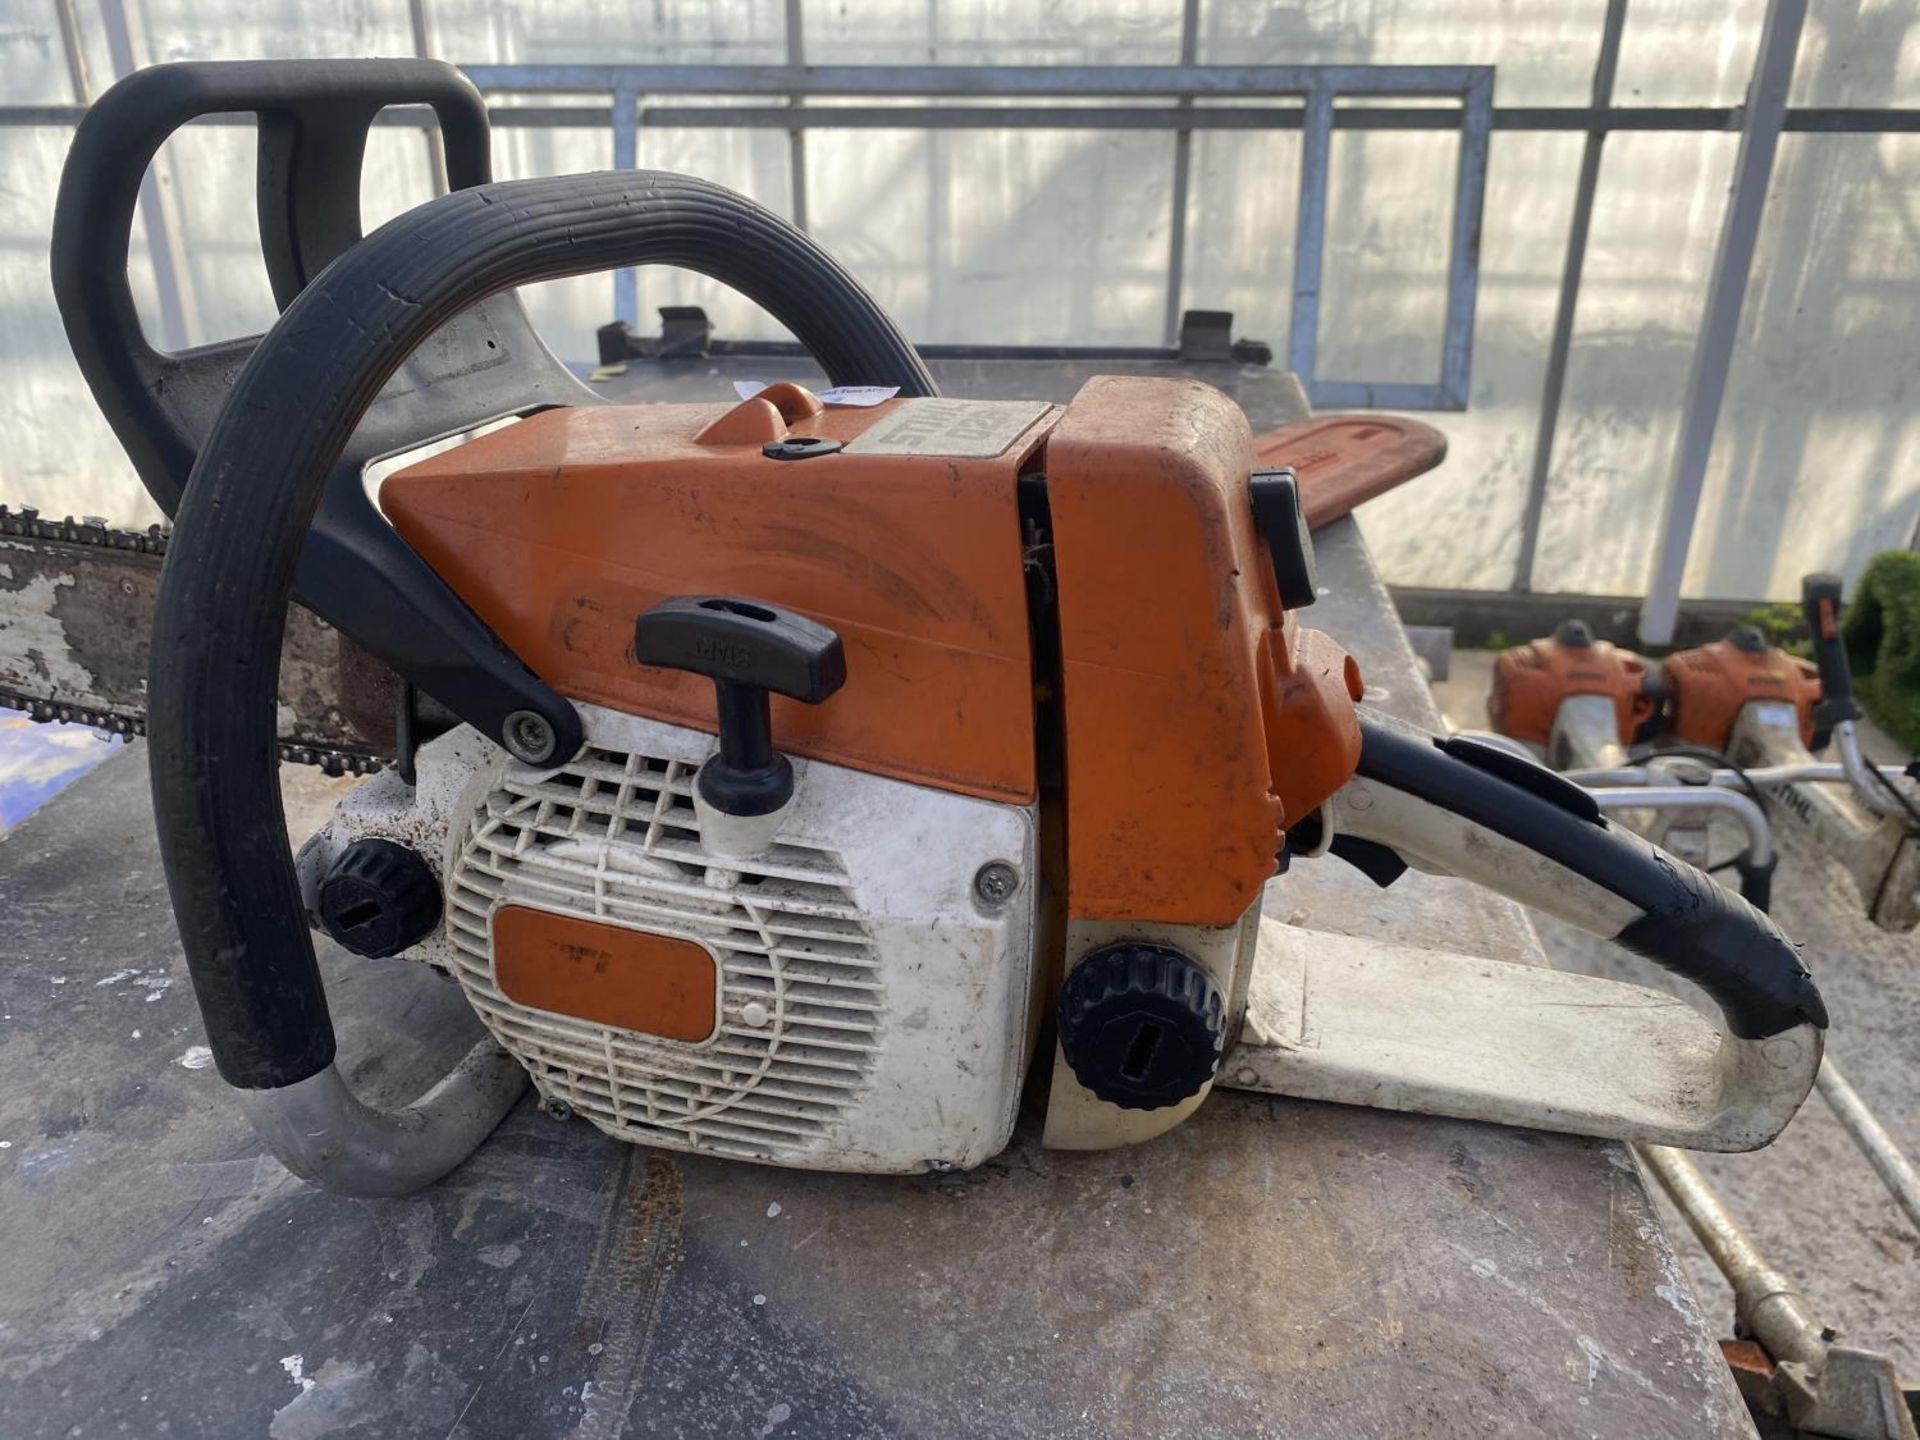 A STIHL 026 CHAINSAW - N0 VAT - Image 5 of 6